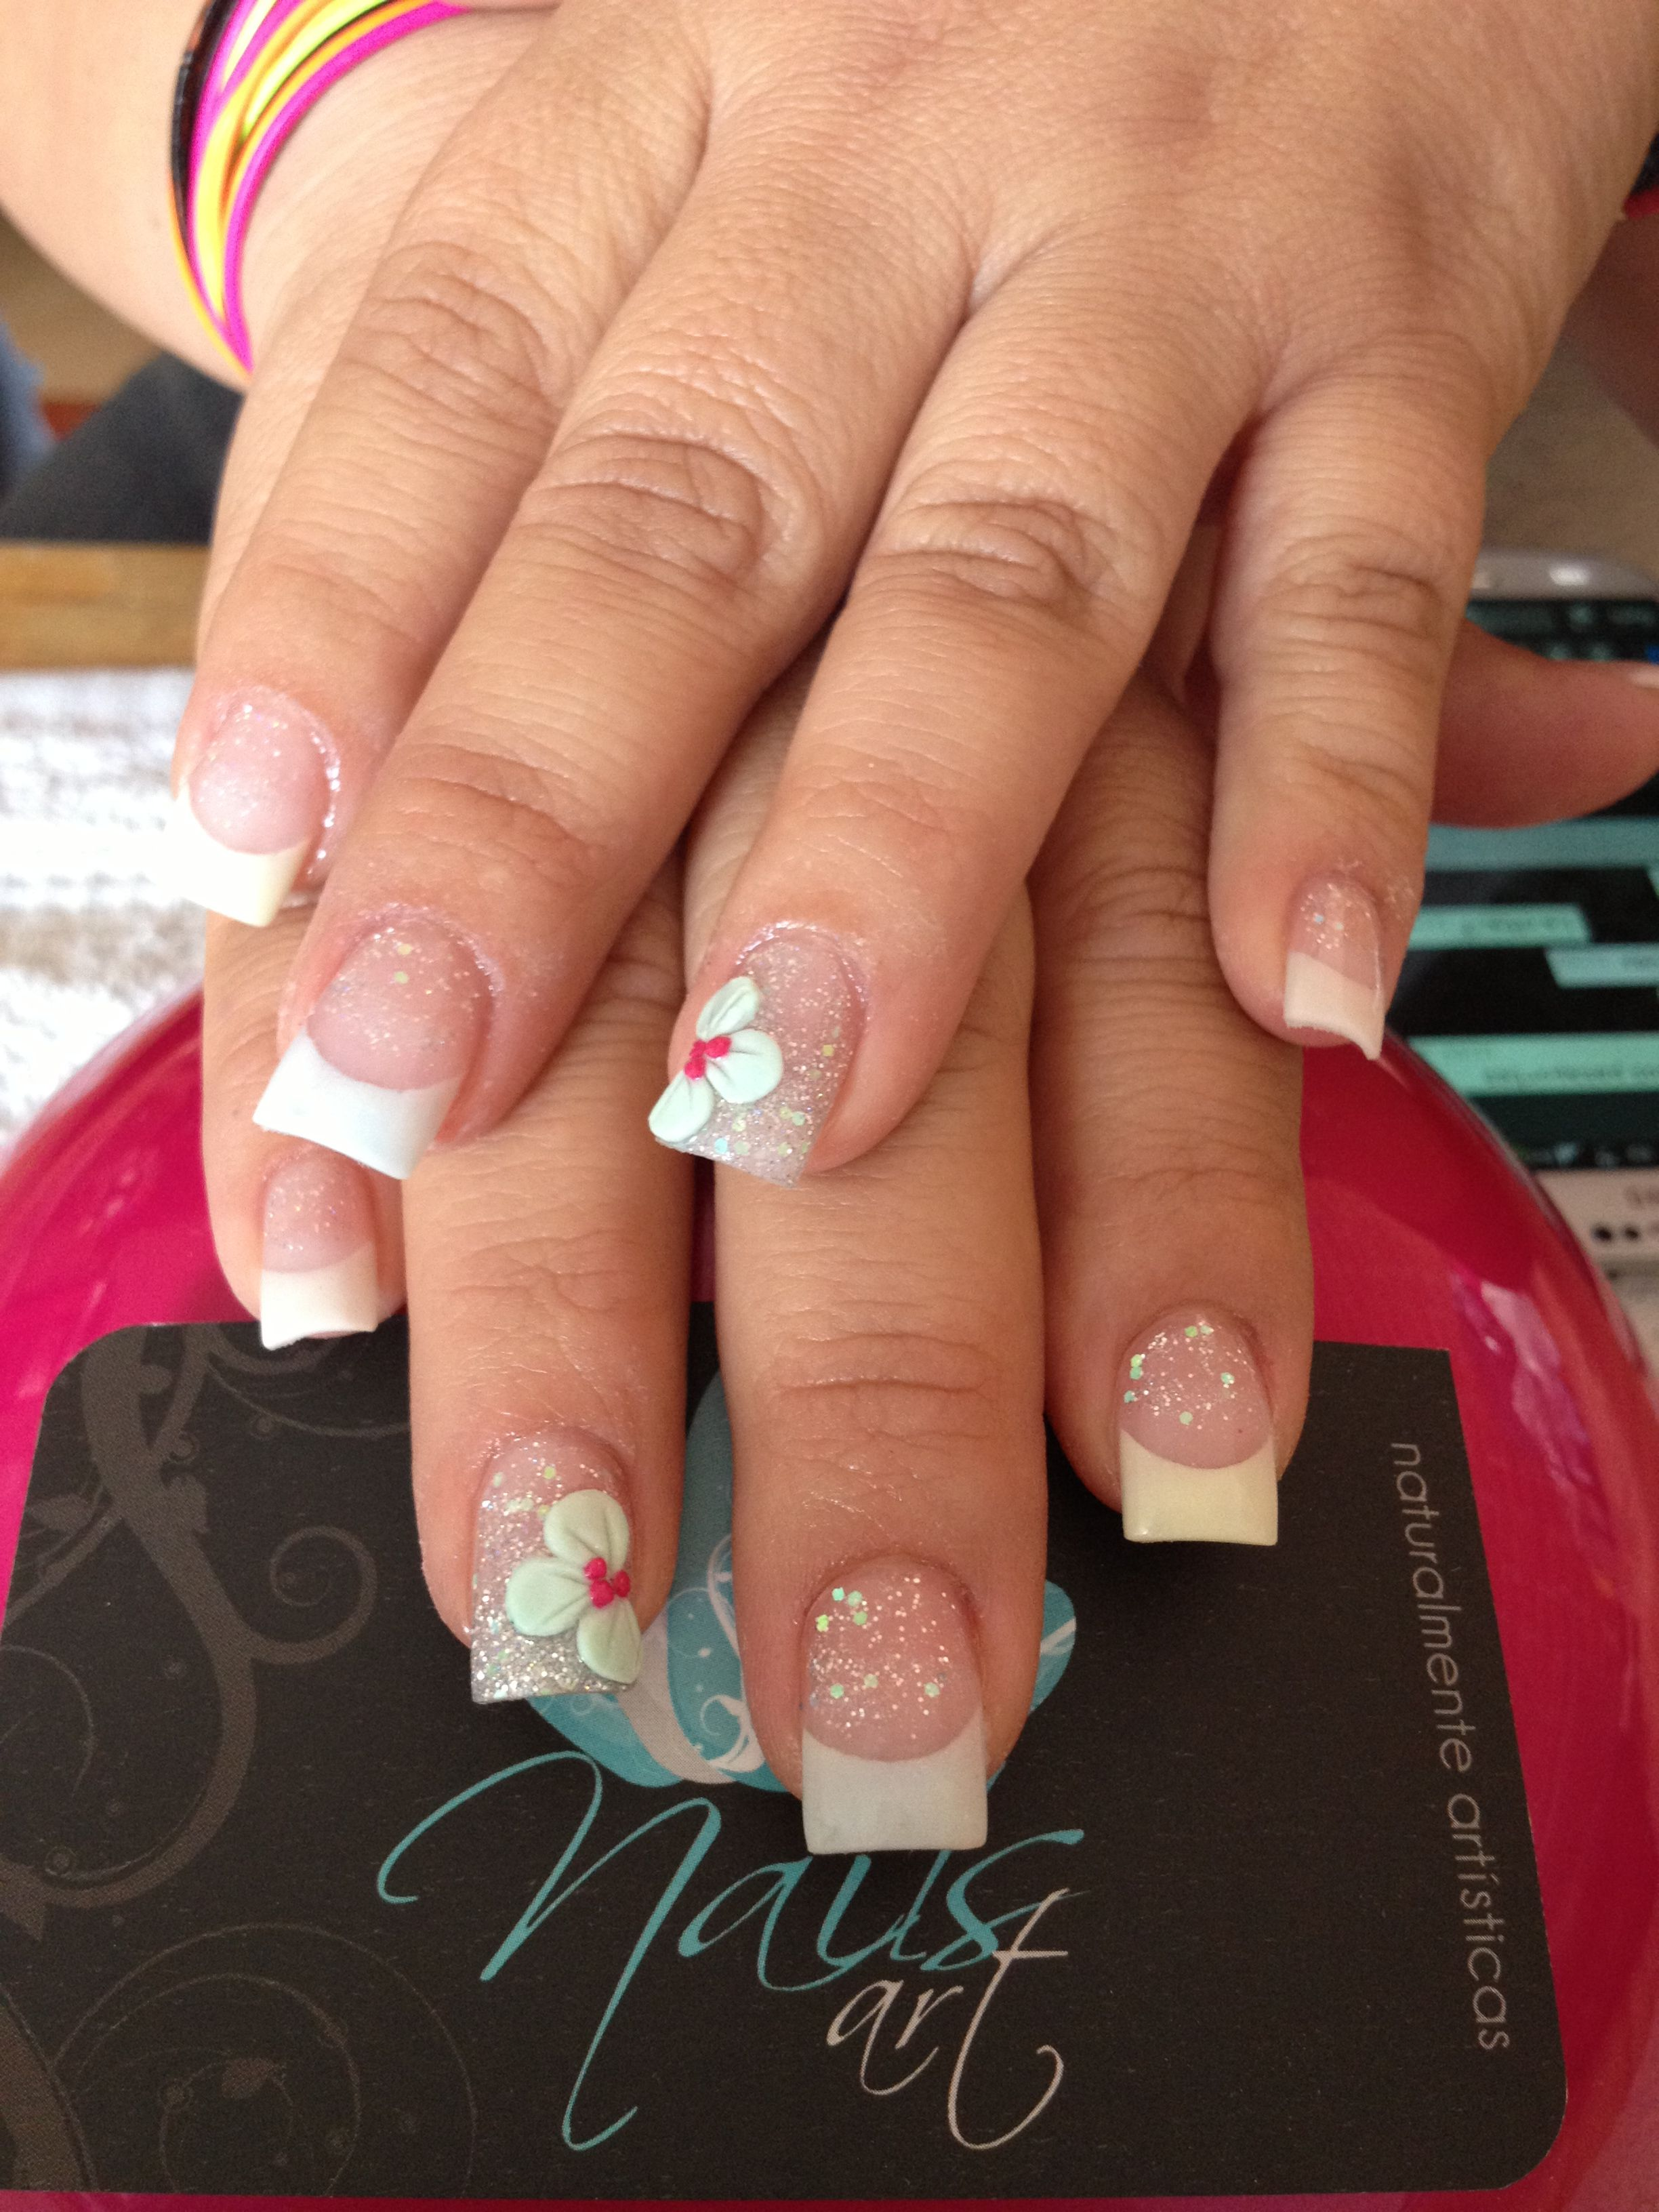 nails art #acrylic nails Free Nail Technician Information http://www ...